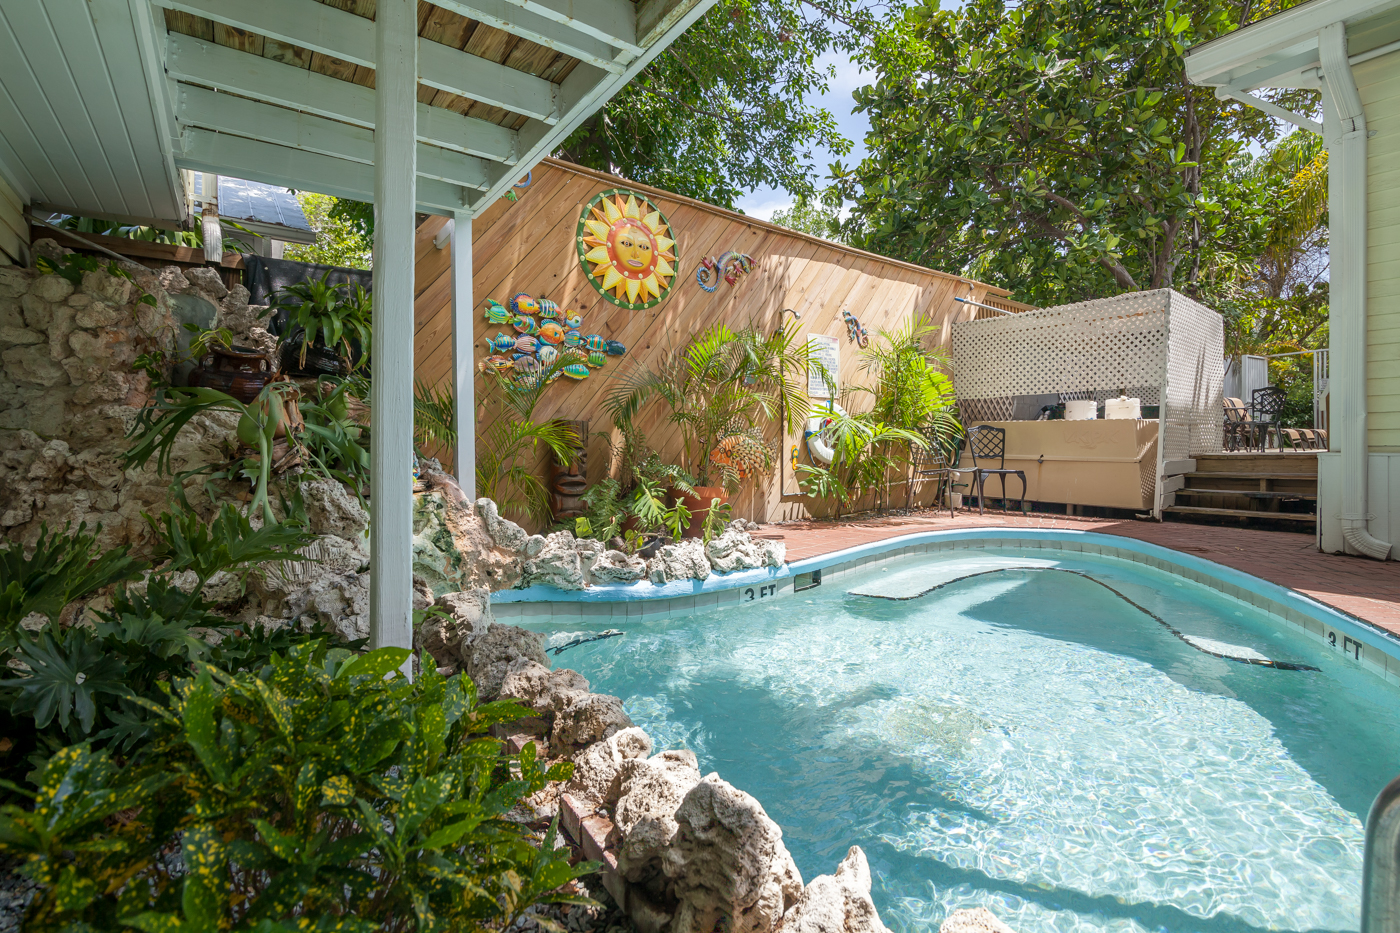 RENT Waterfall 3 Garden House Key West Vacation Rental